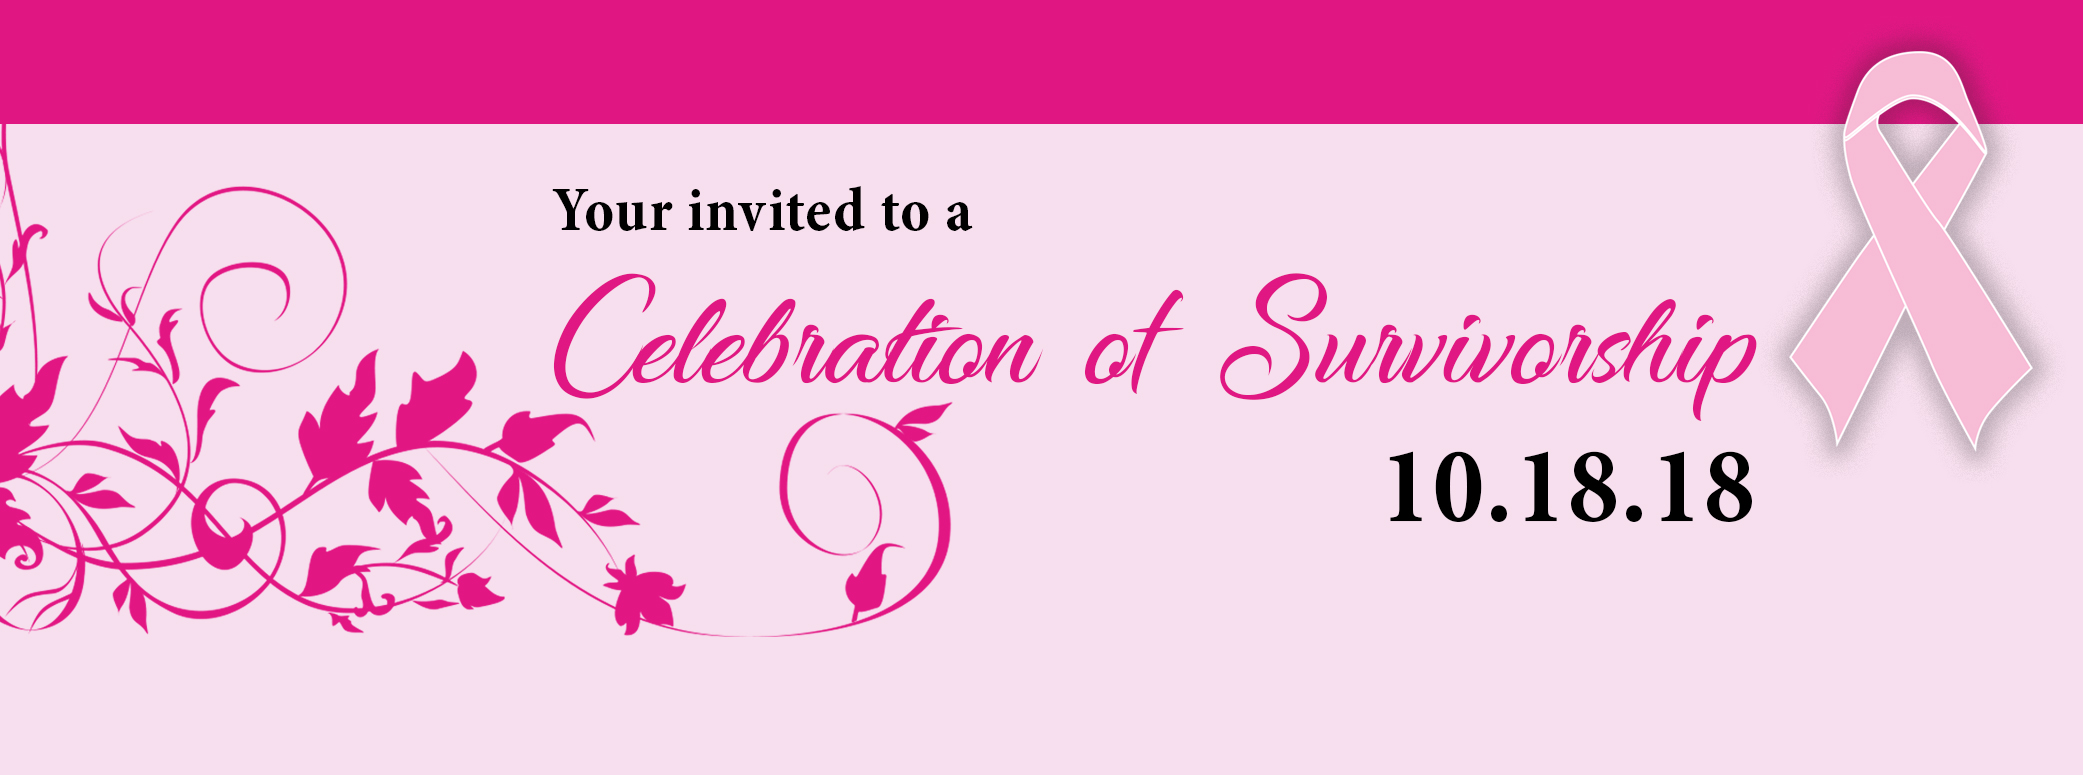 Celebration of Survivorship 2018